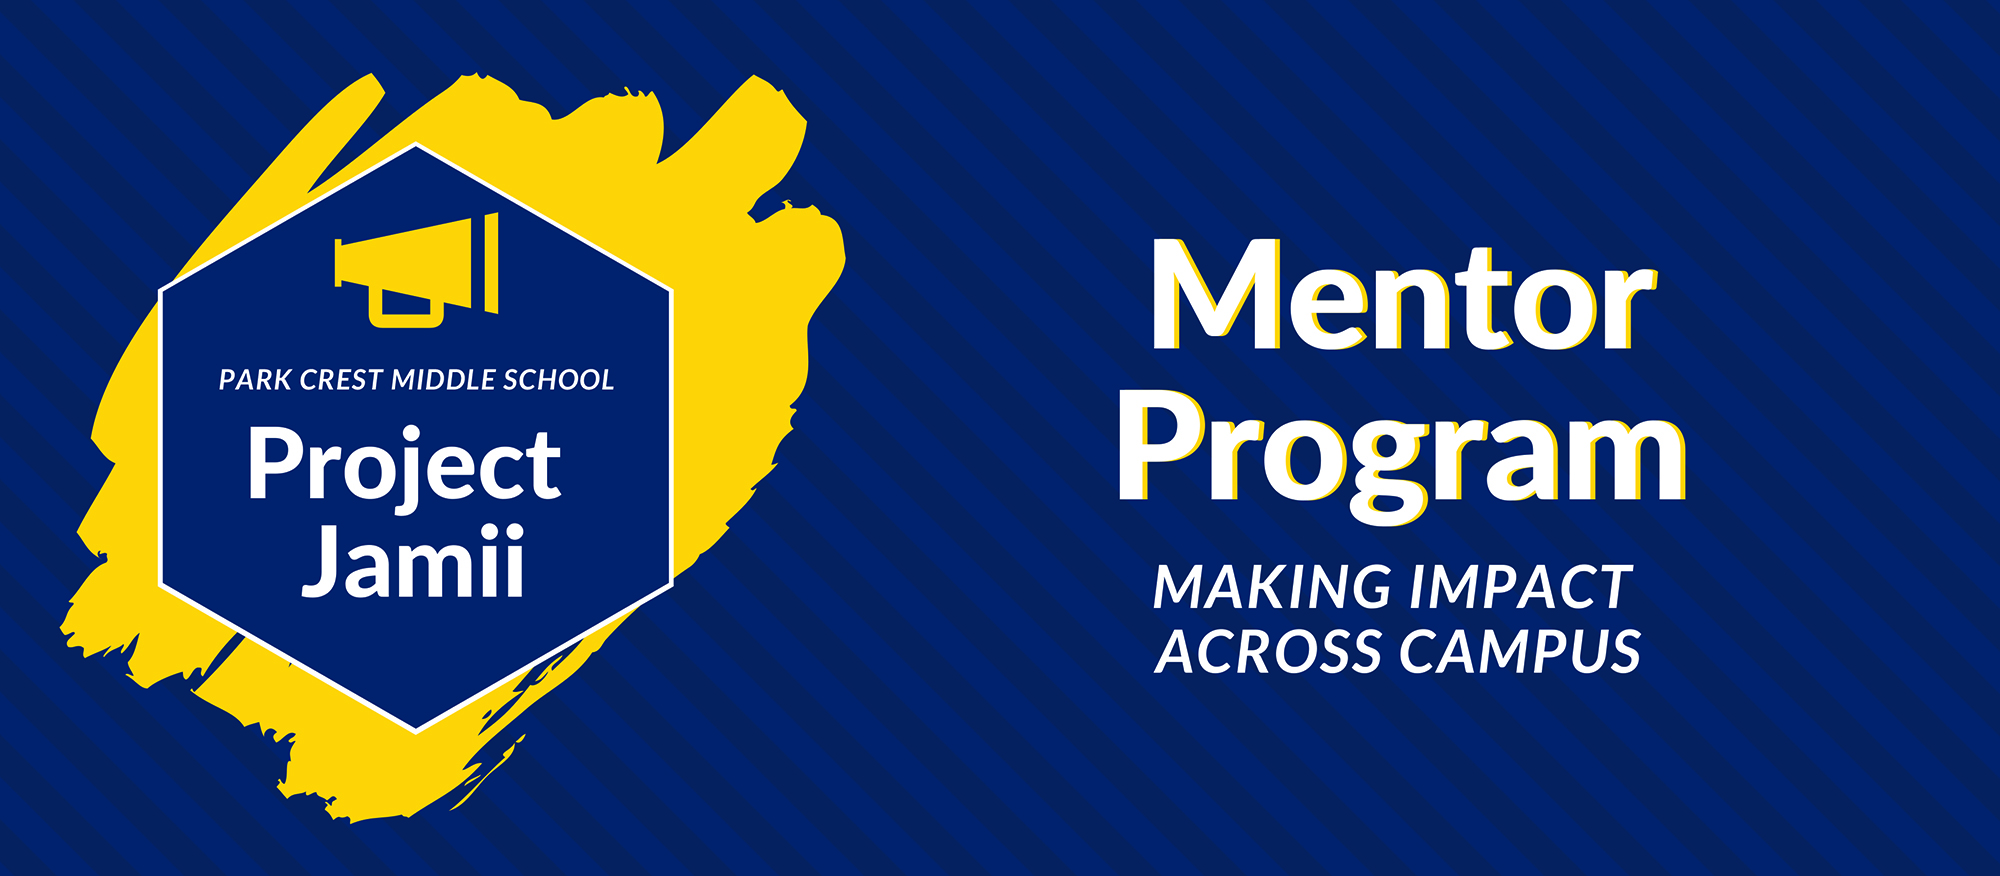 Project Jamii Mentor Program making impact across campus